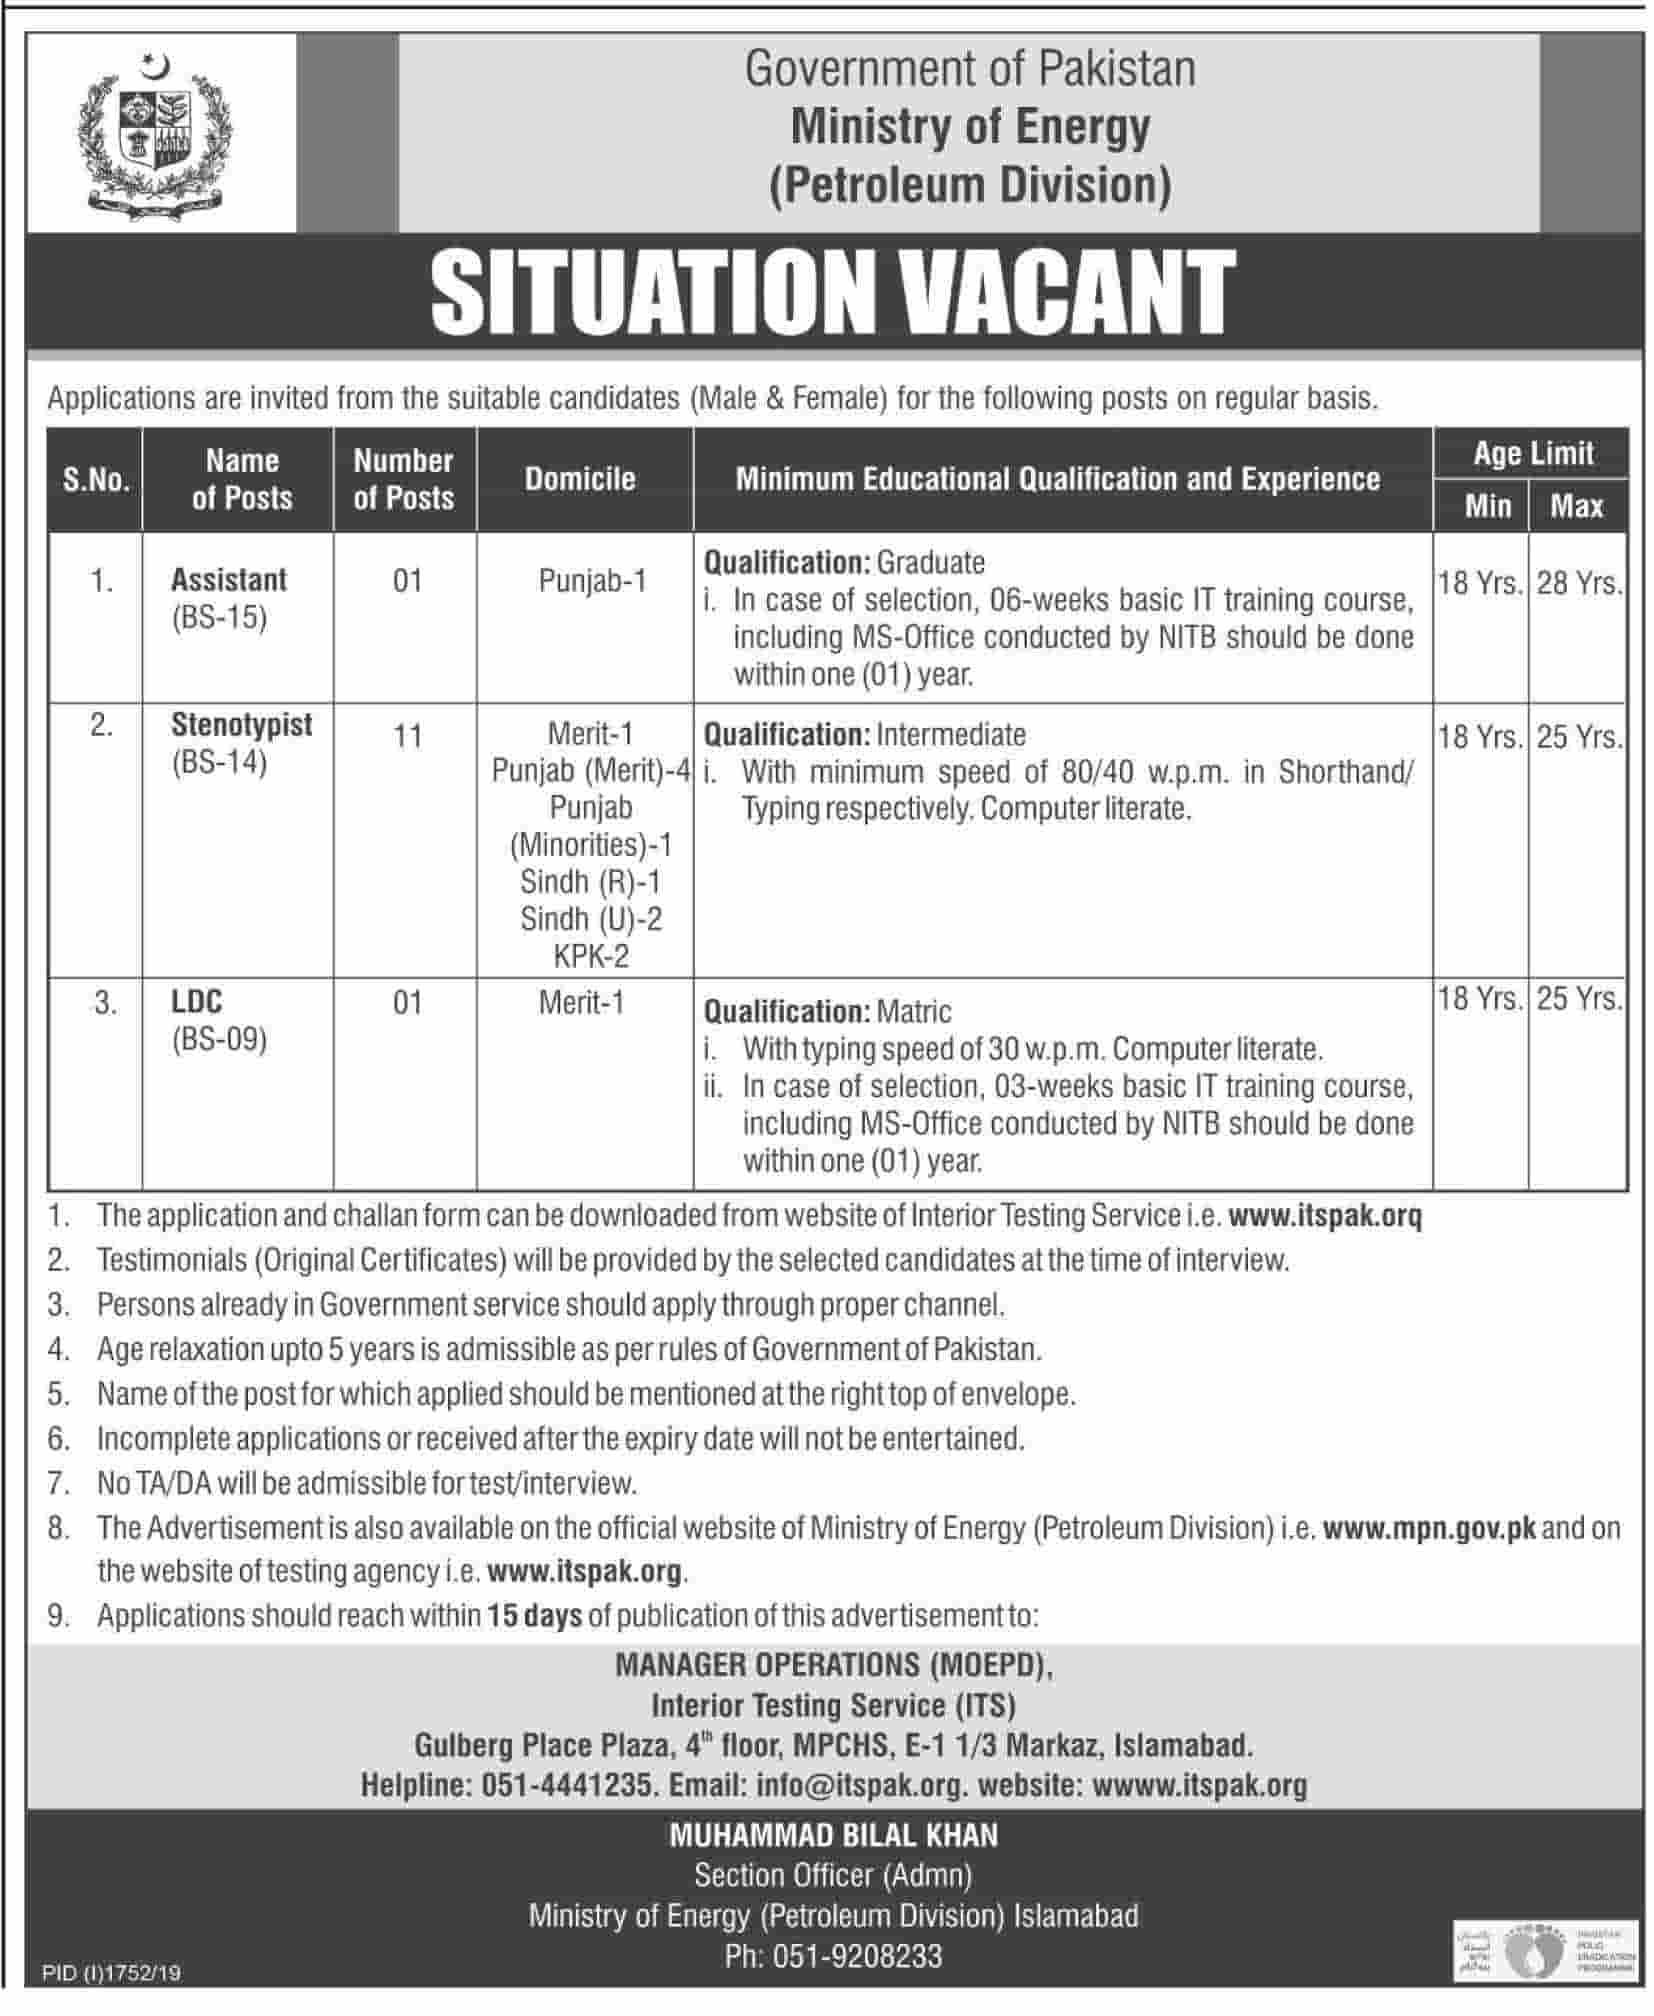 Government of Pakistan Ministry of Energy Petroleum Division Jobs October 2019 ITS